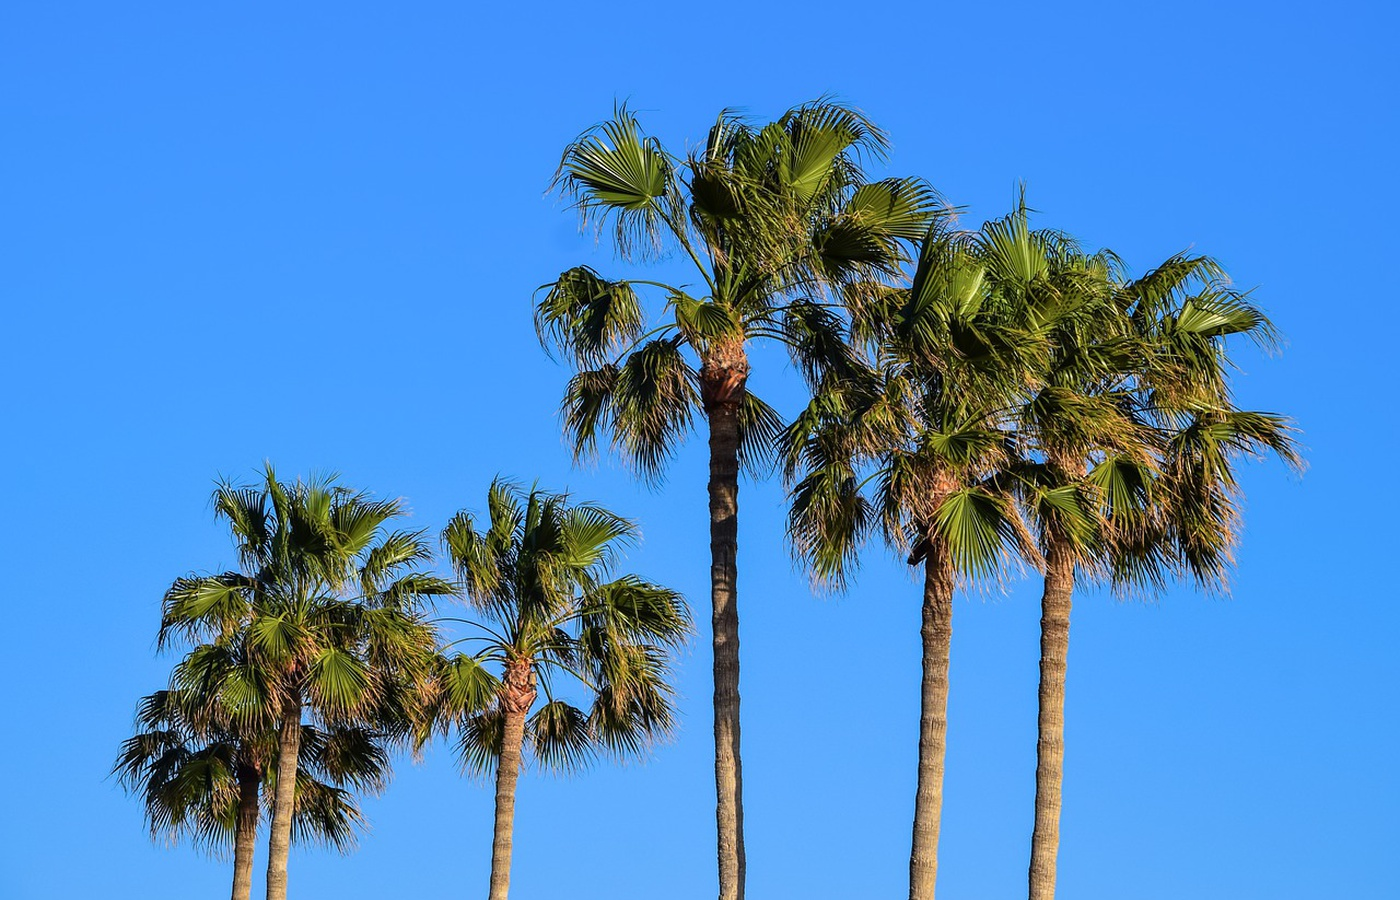 The Most Expensive Palm Tree & Why It's a Real Investment